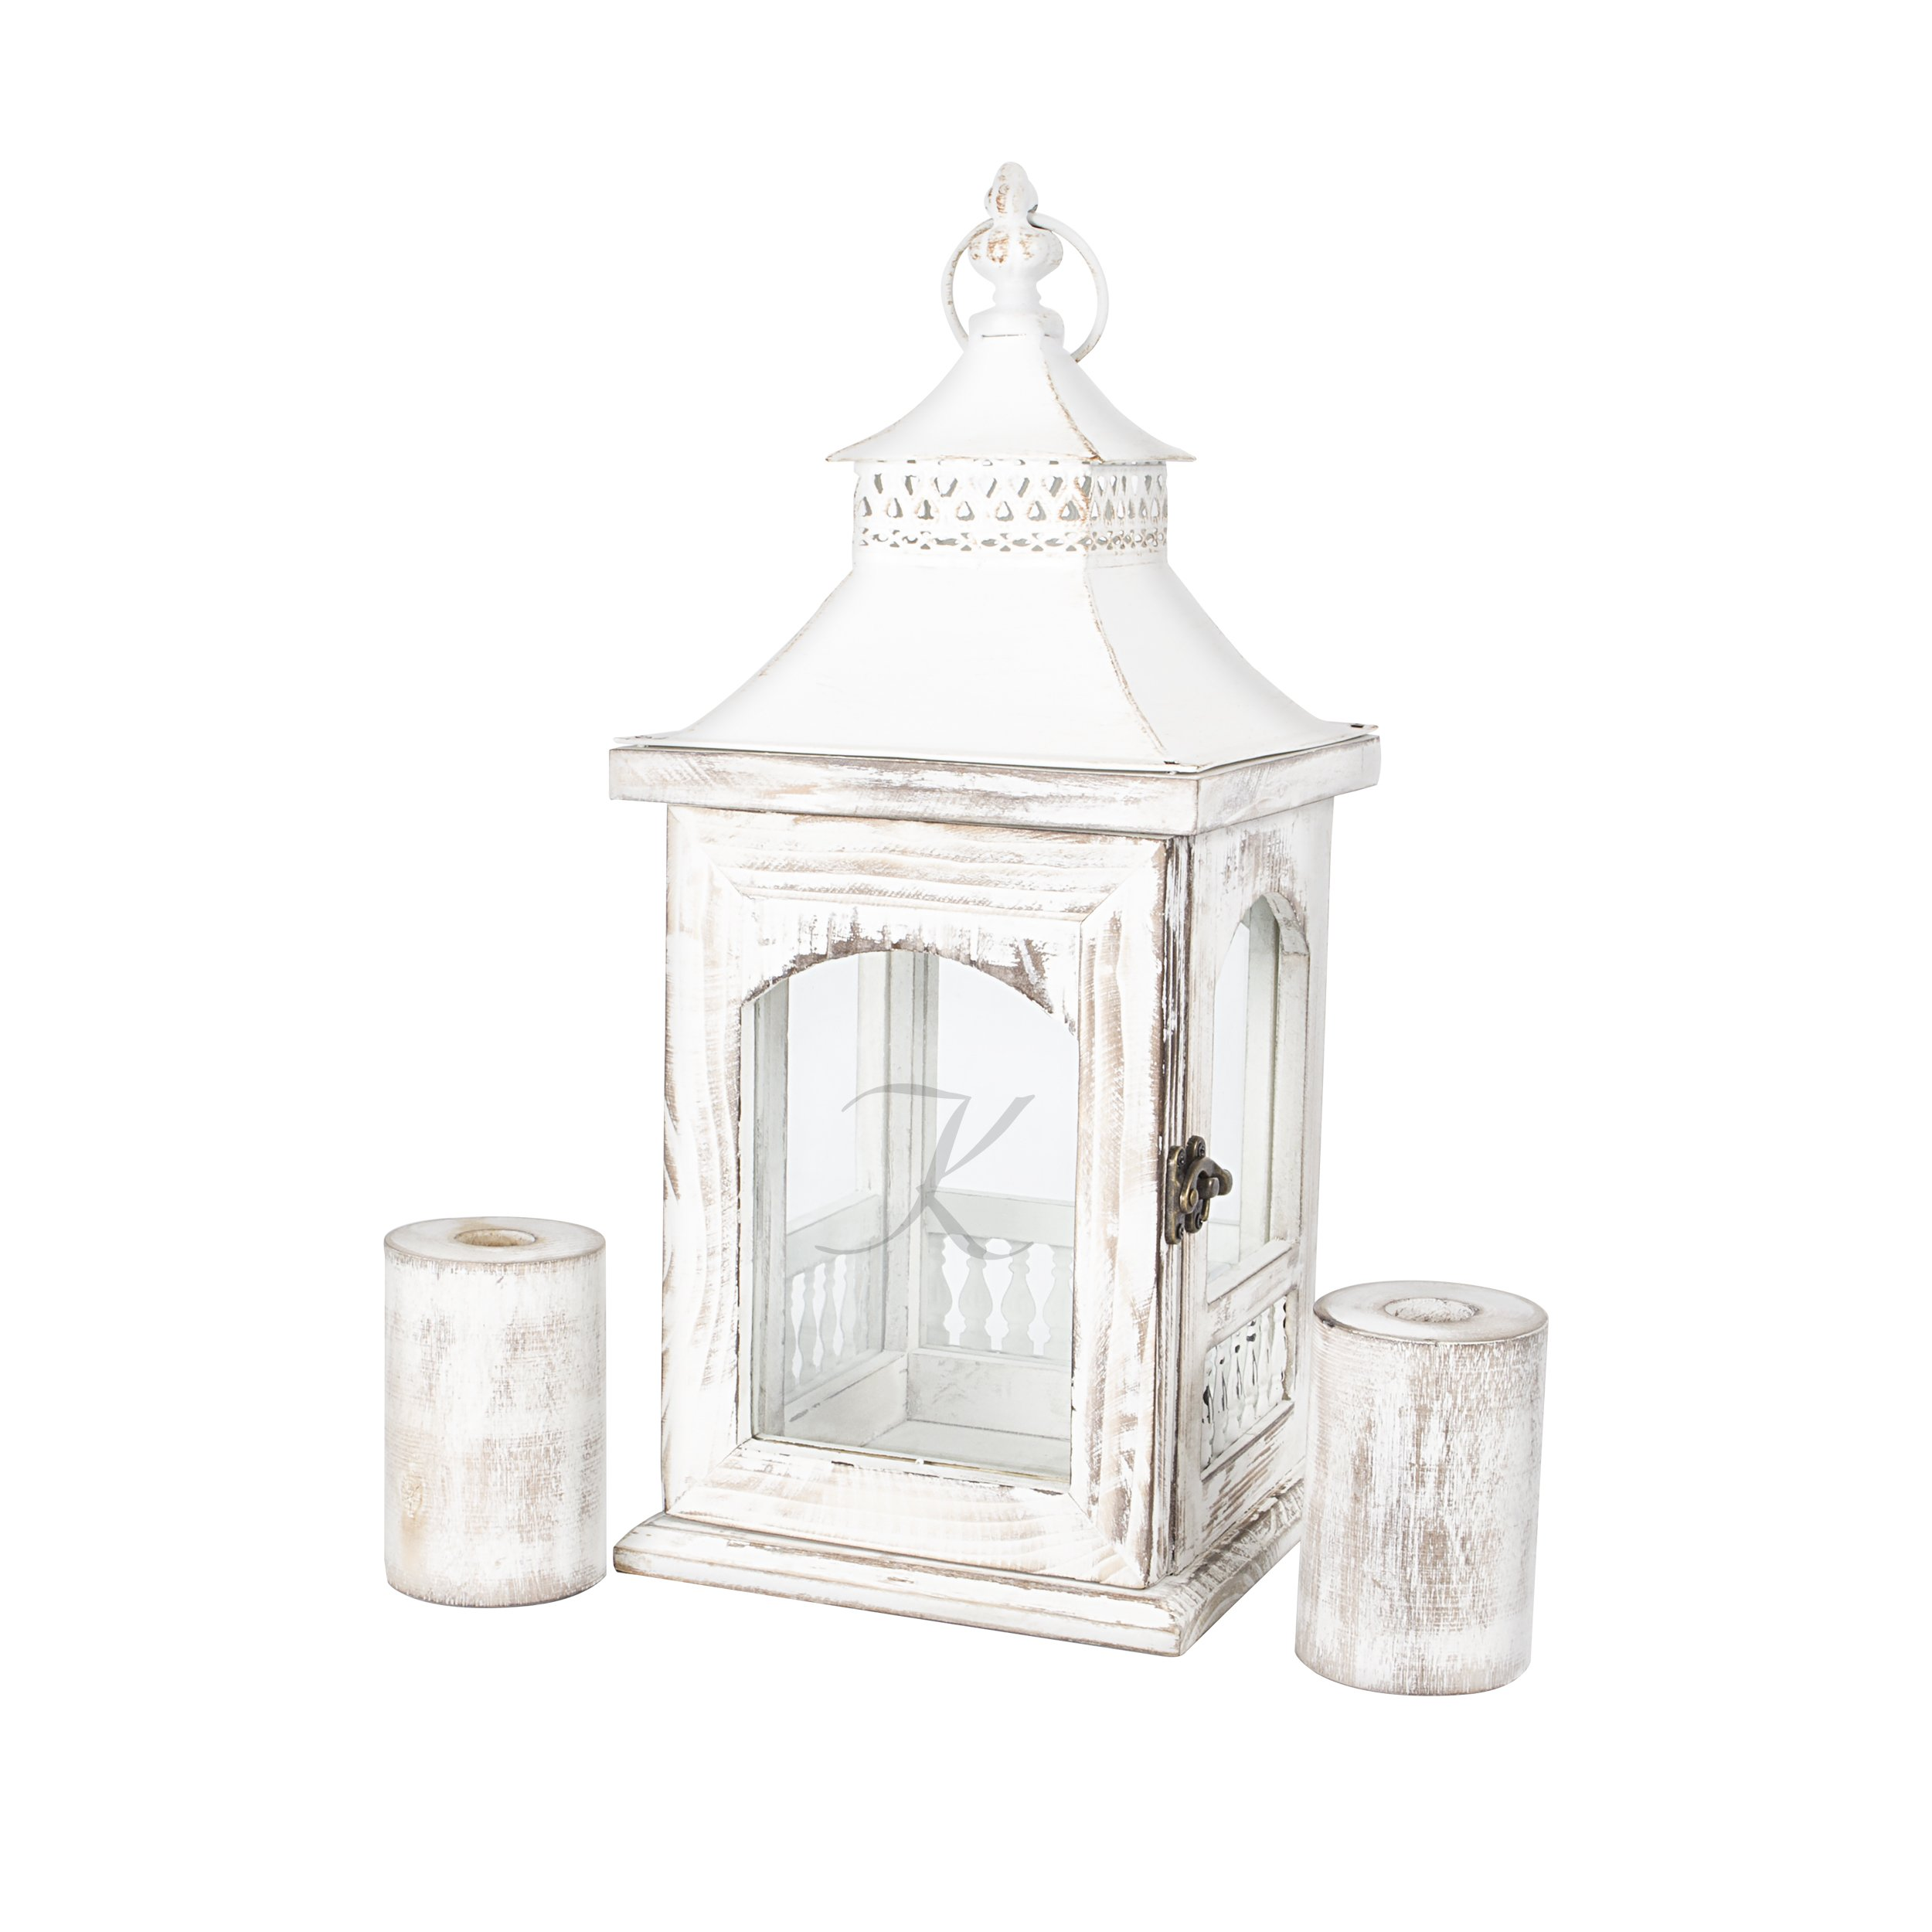 Cathy's Concepts Personalized Rustic Unity Lantern with Candle Holder, Letter K